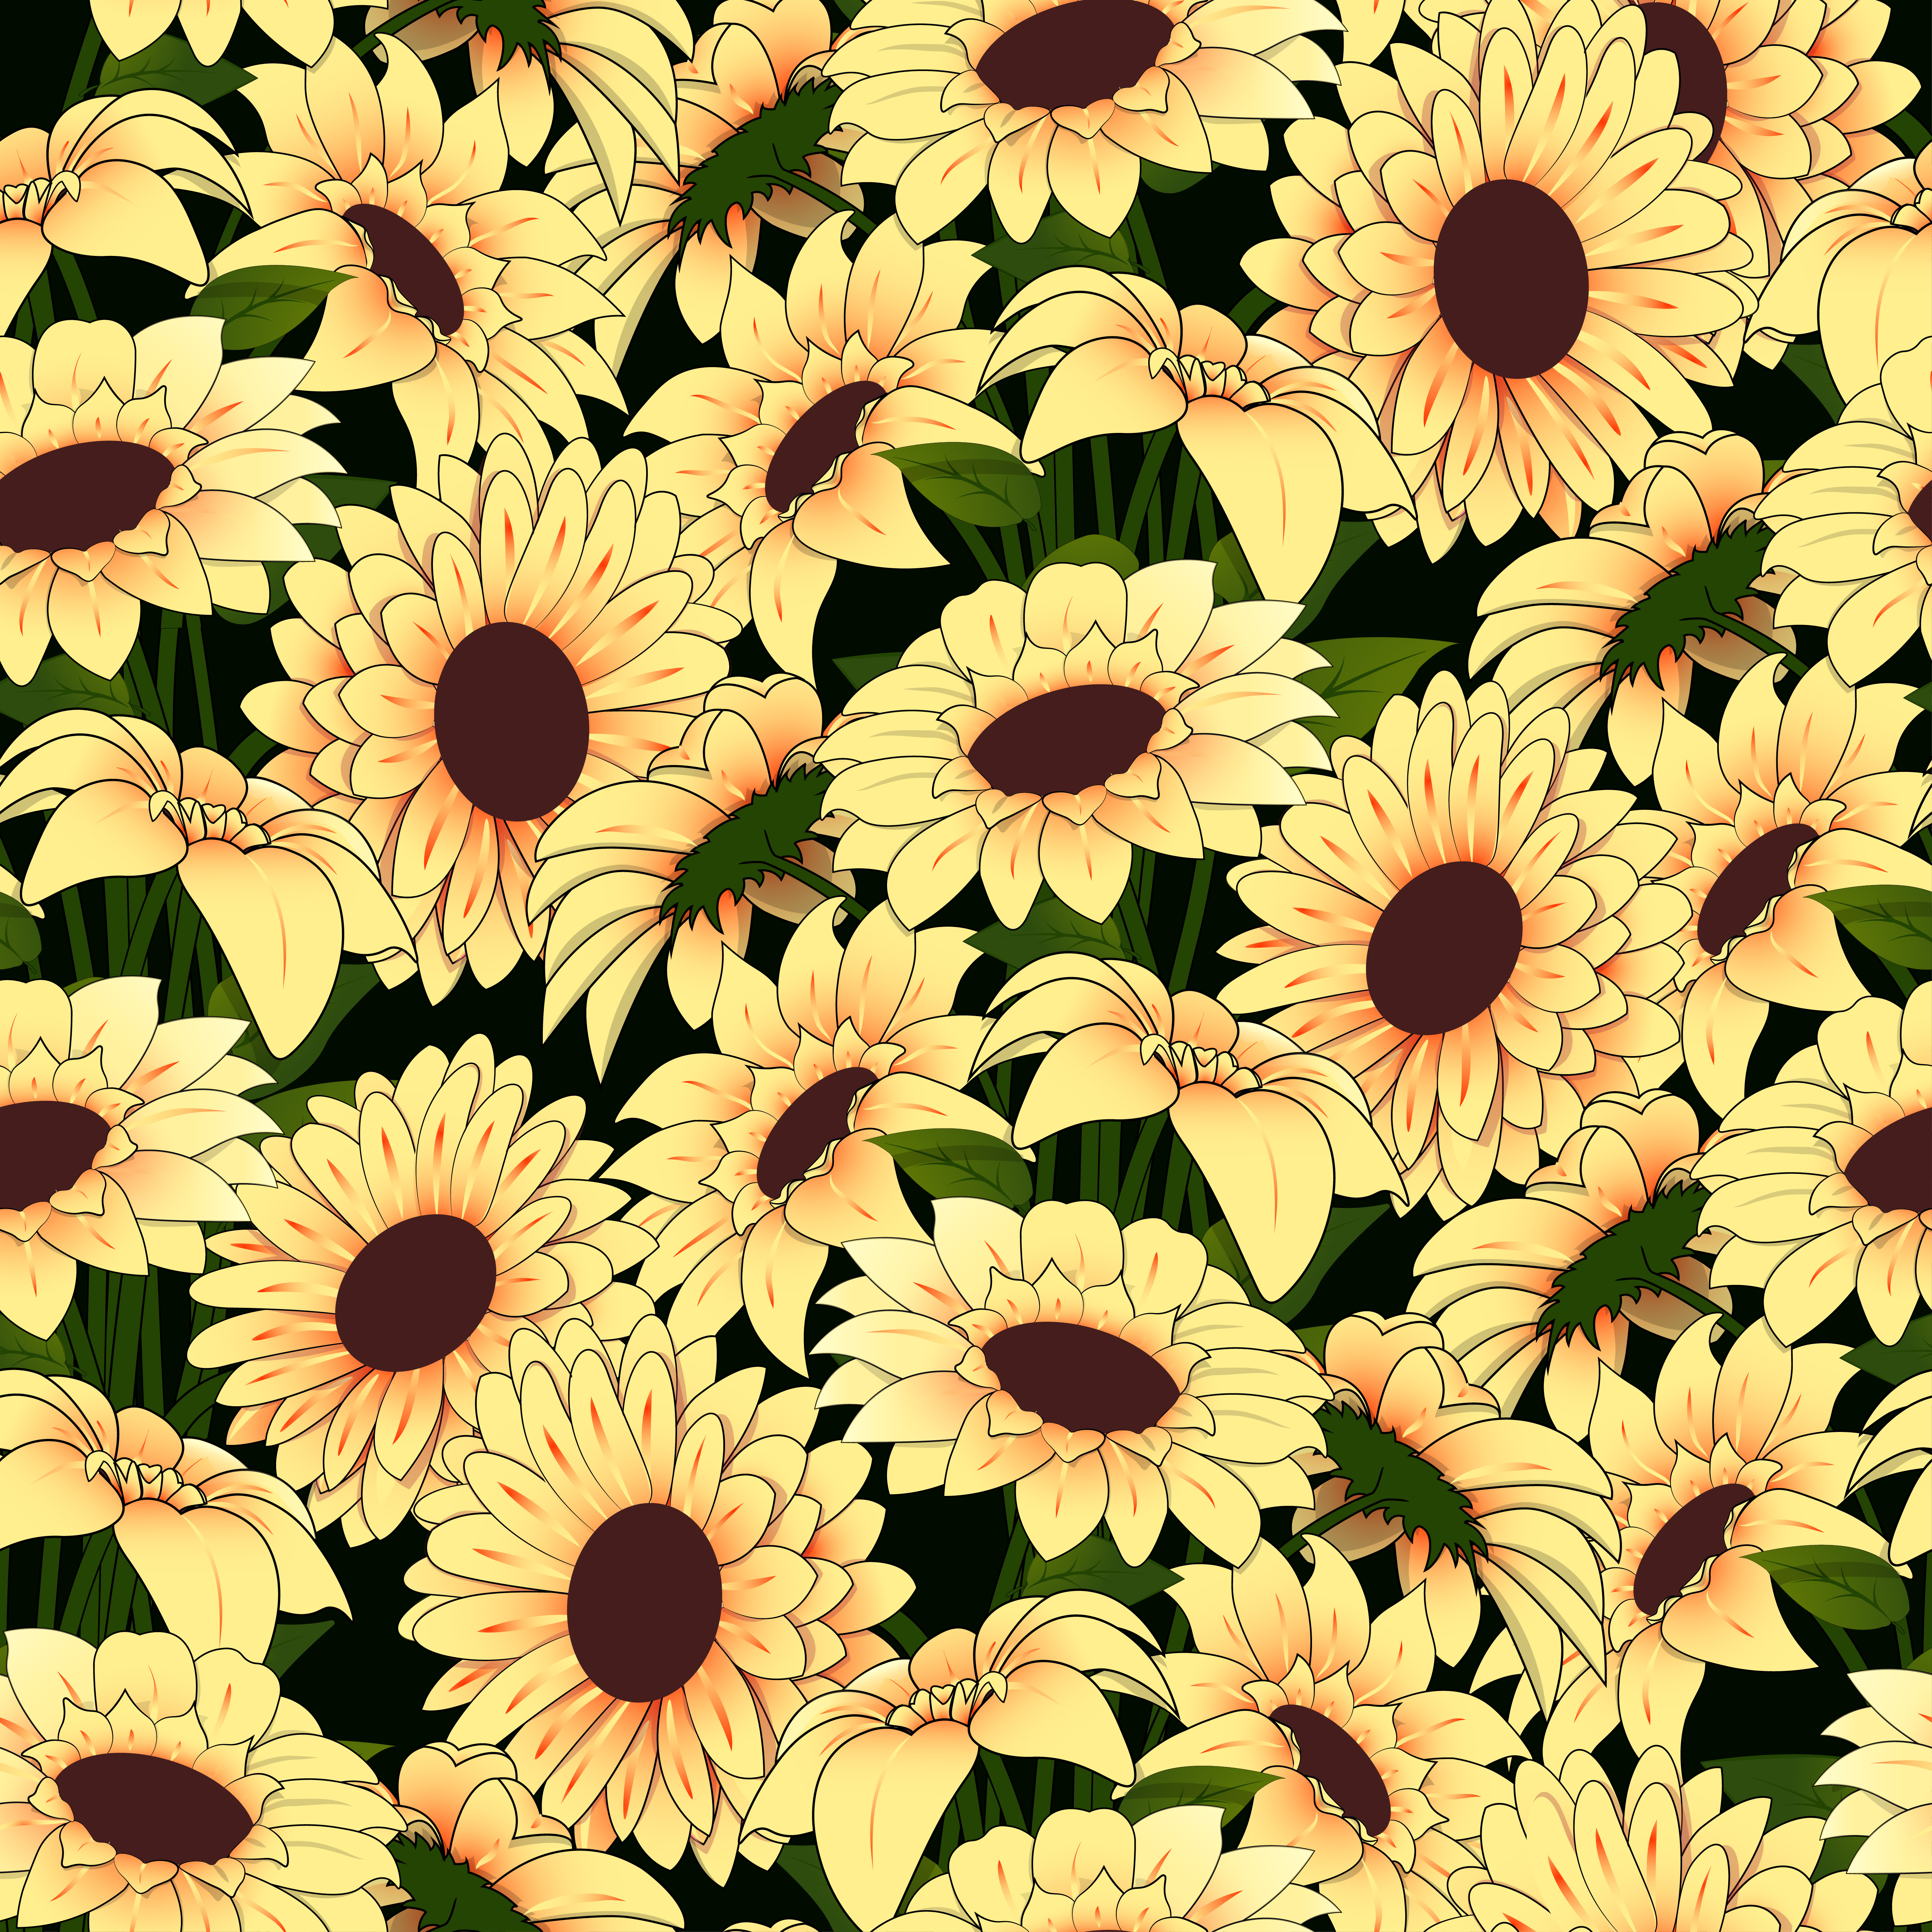 Yellow Flowers In A Yellow Vase Pattern On A Dark Background